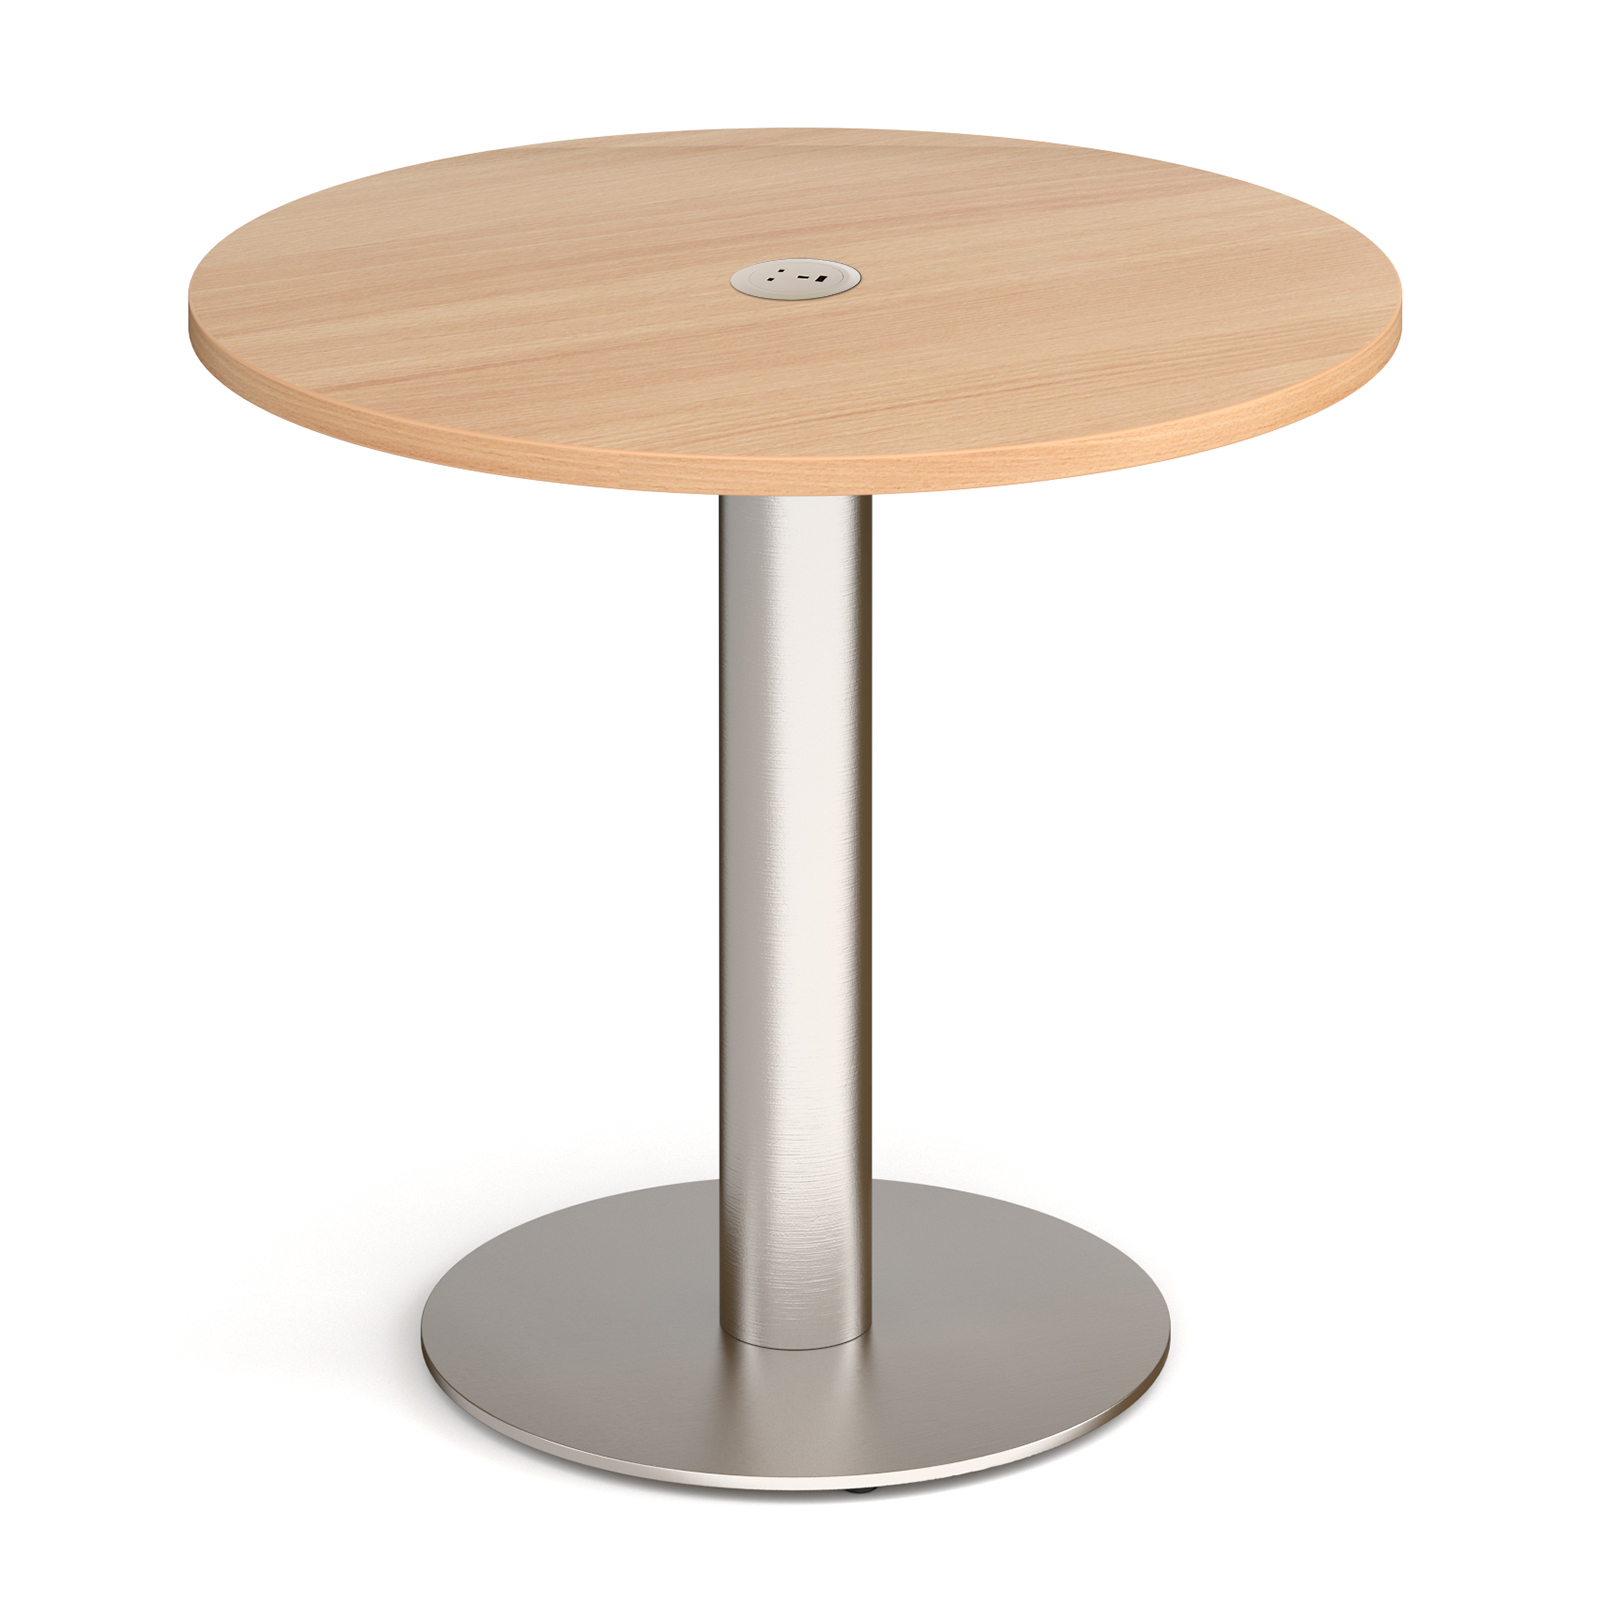 Boardroom / Meeting Monza circular dining table 800mm in beech with central circular cutout and Ion power module in white